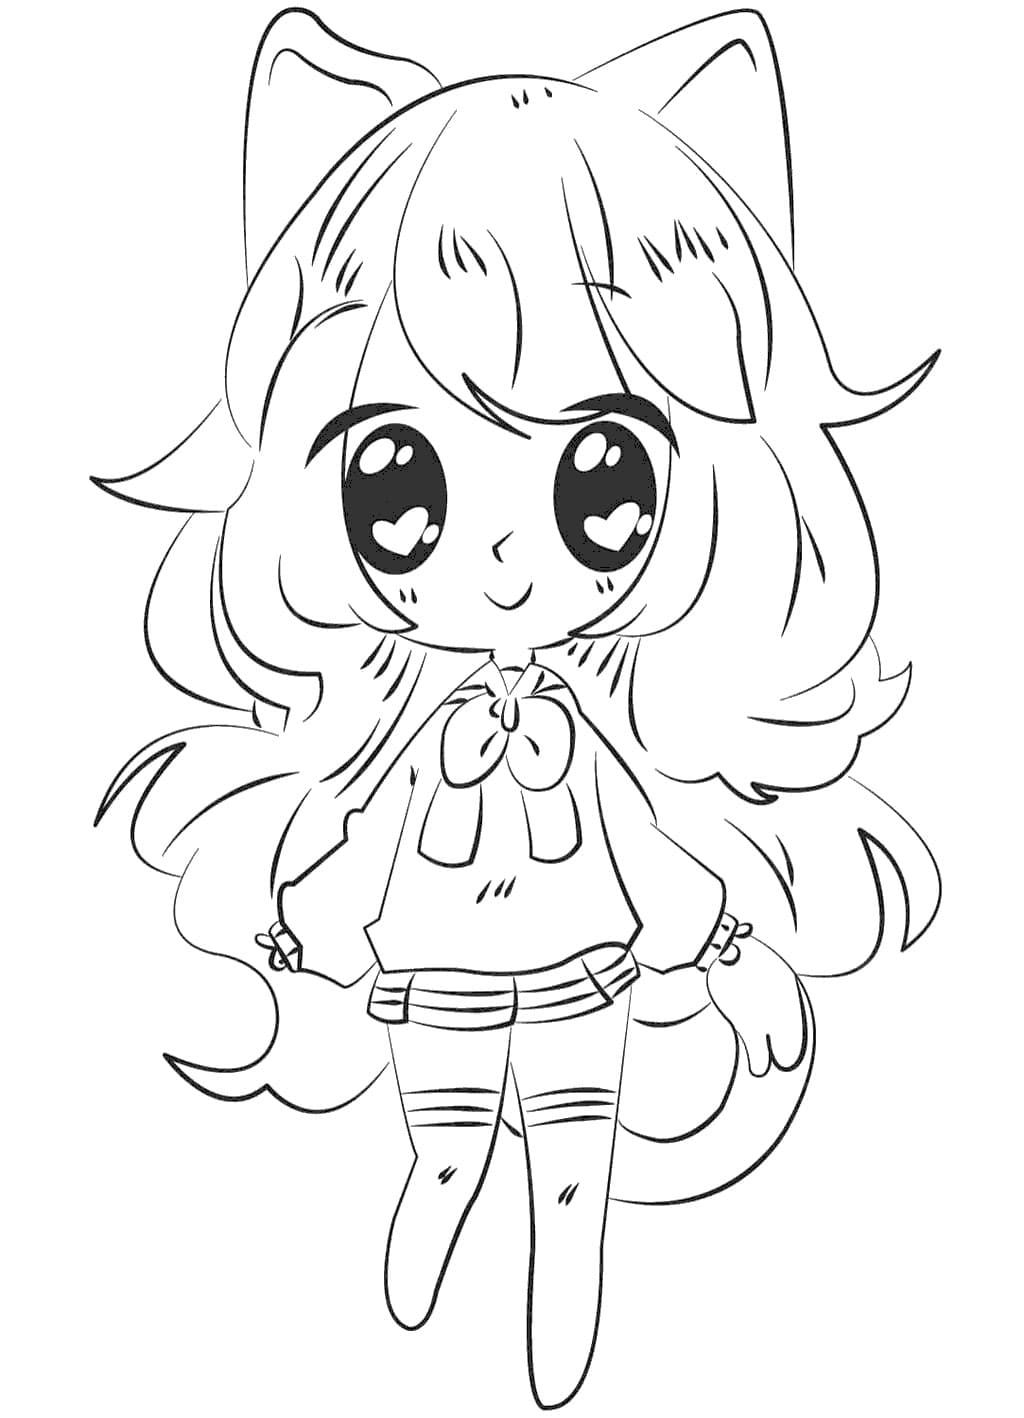 Gacha Life Coloring Pages Unique Collection Print For Free